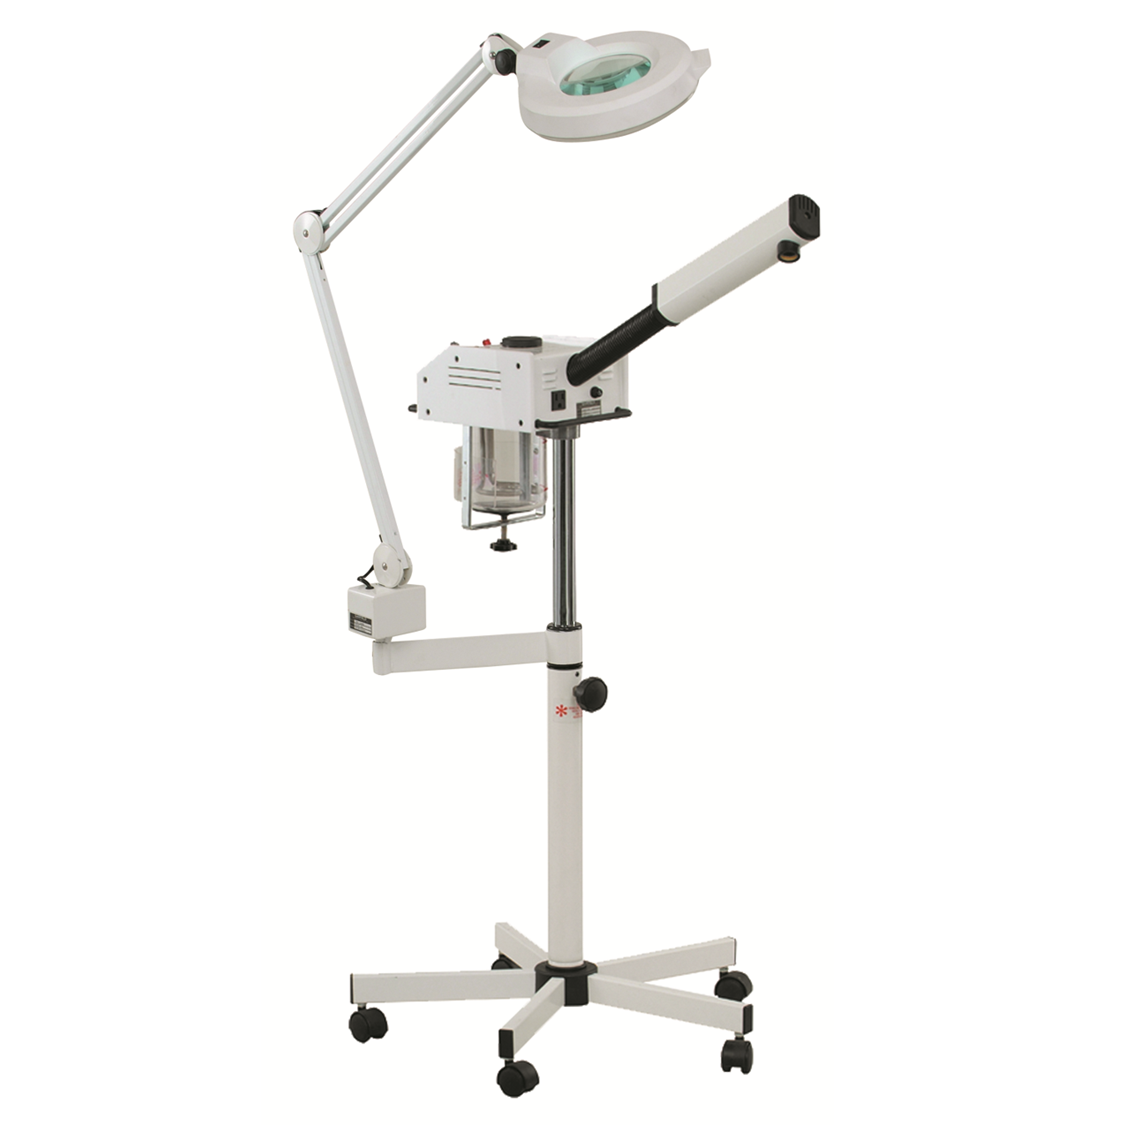 101-0186 Facial Steamer and Spa Treatment Lamp Combo - Garfield Commercial Enterprises Salon Equipment Spa Furniture Barber Chair Luxury